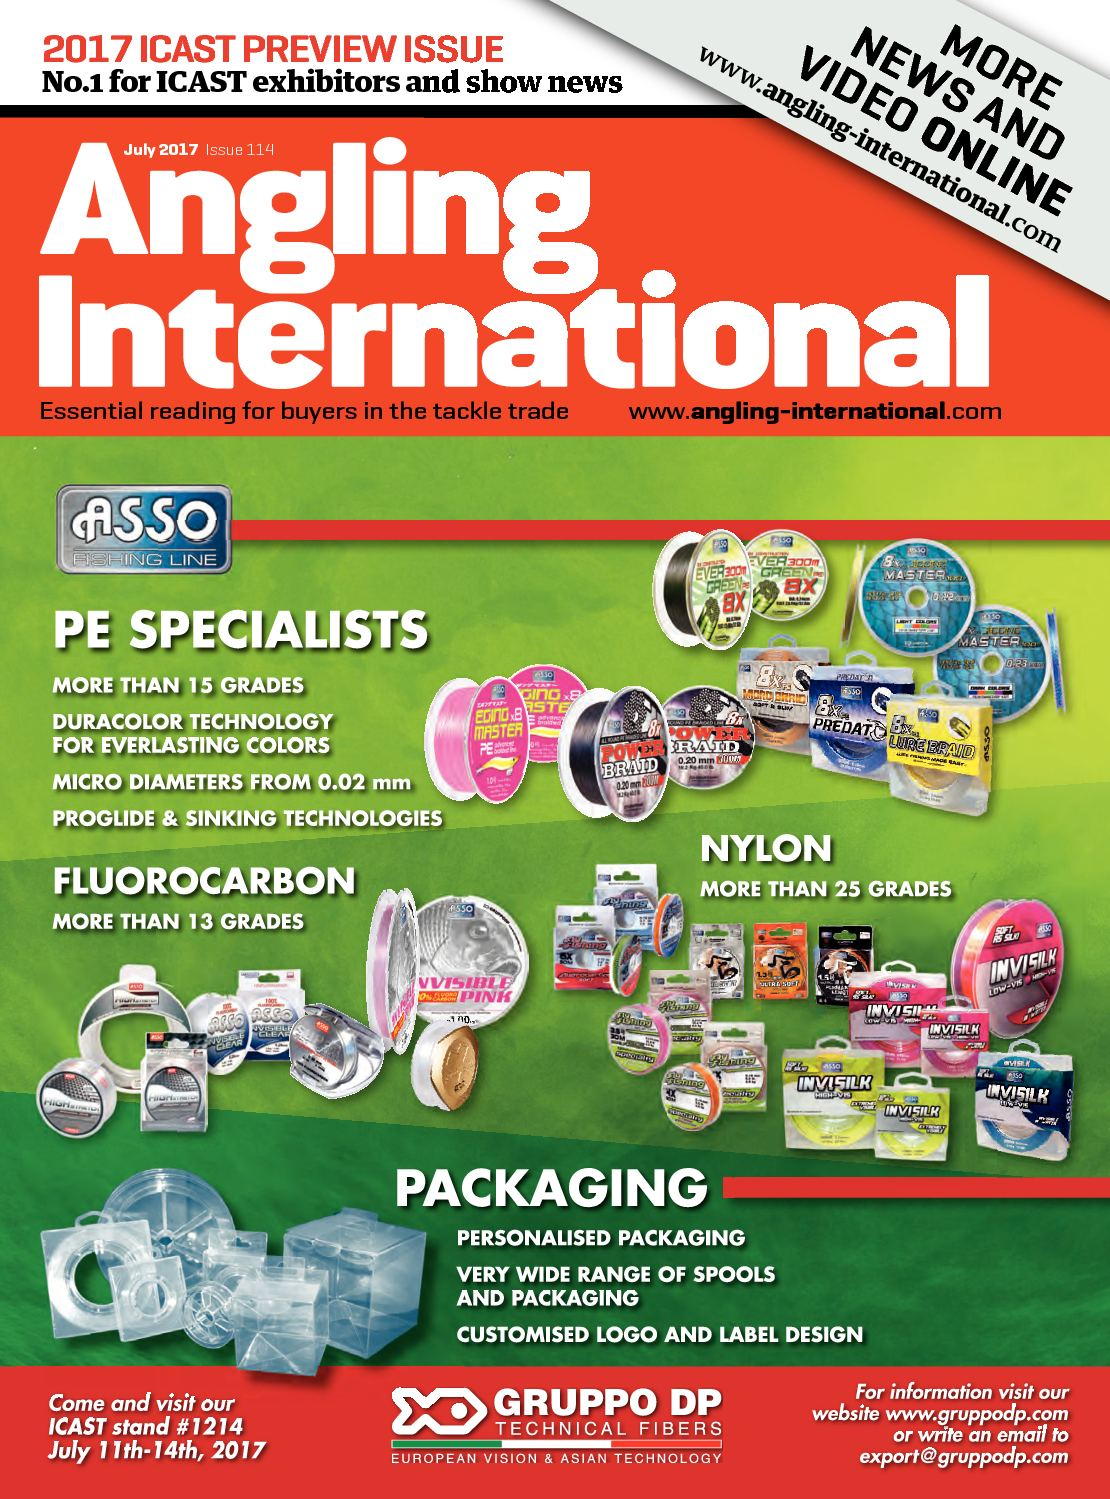 ab919db83272e Calaméo - Angling International - July 2017 - issue 114